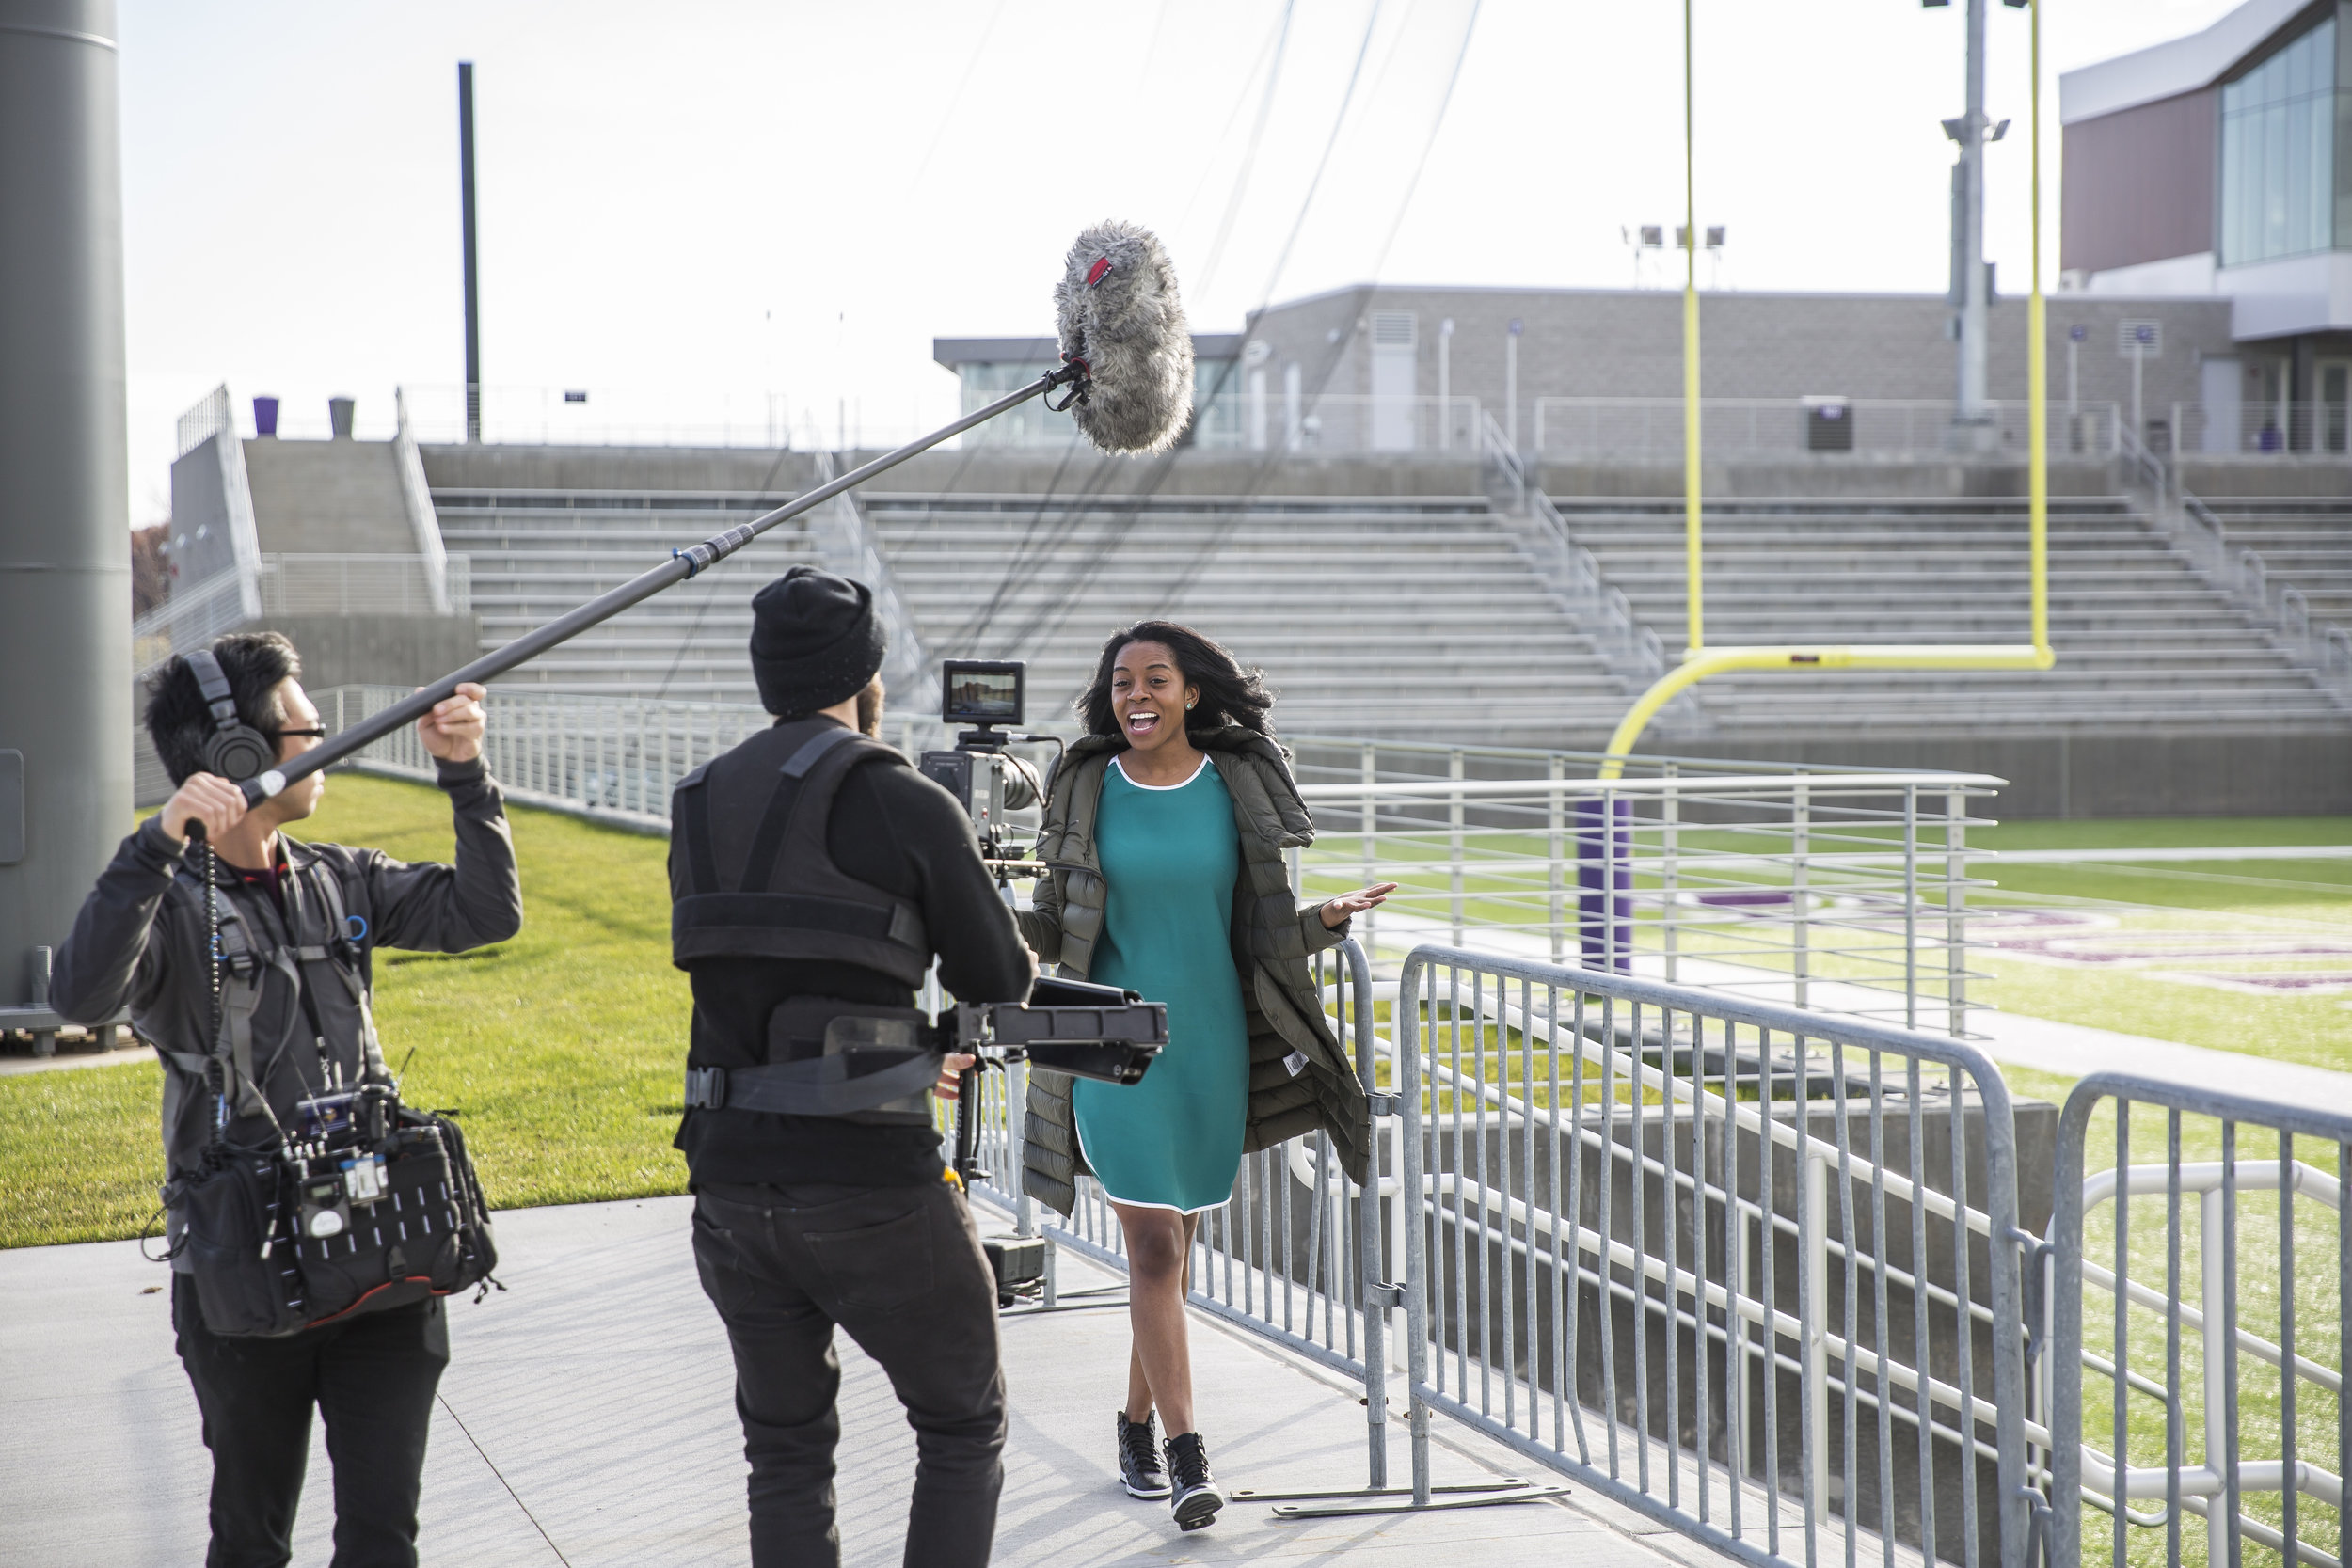 I was selected as the first-ever Courtyard NFL Global Correspondent where I uncovered the NFL fan experience in different cities. - LEARN MORE ABOUT MESEE MY WORK BELOW